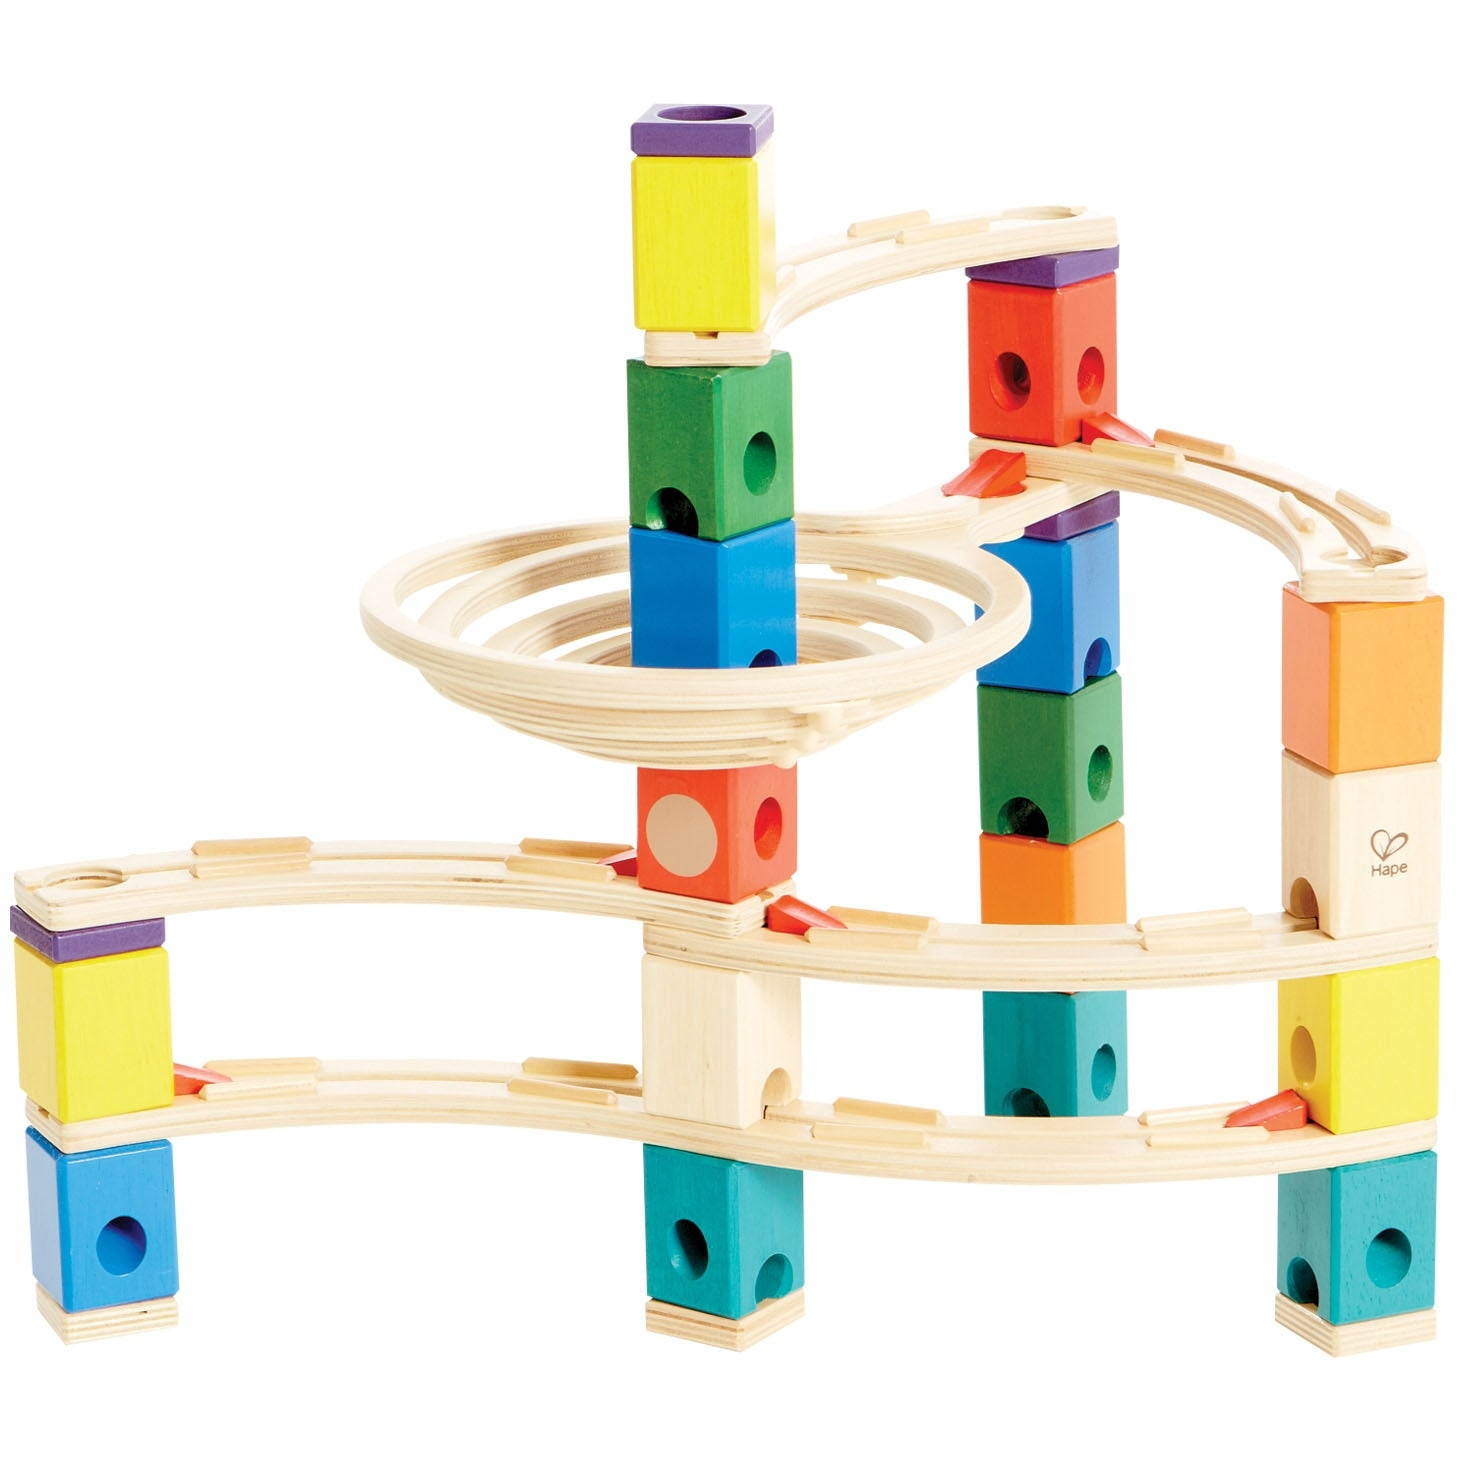 Quadrilla Whirlpool Marble Run 106pc - Hape